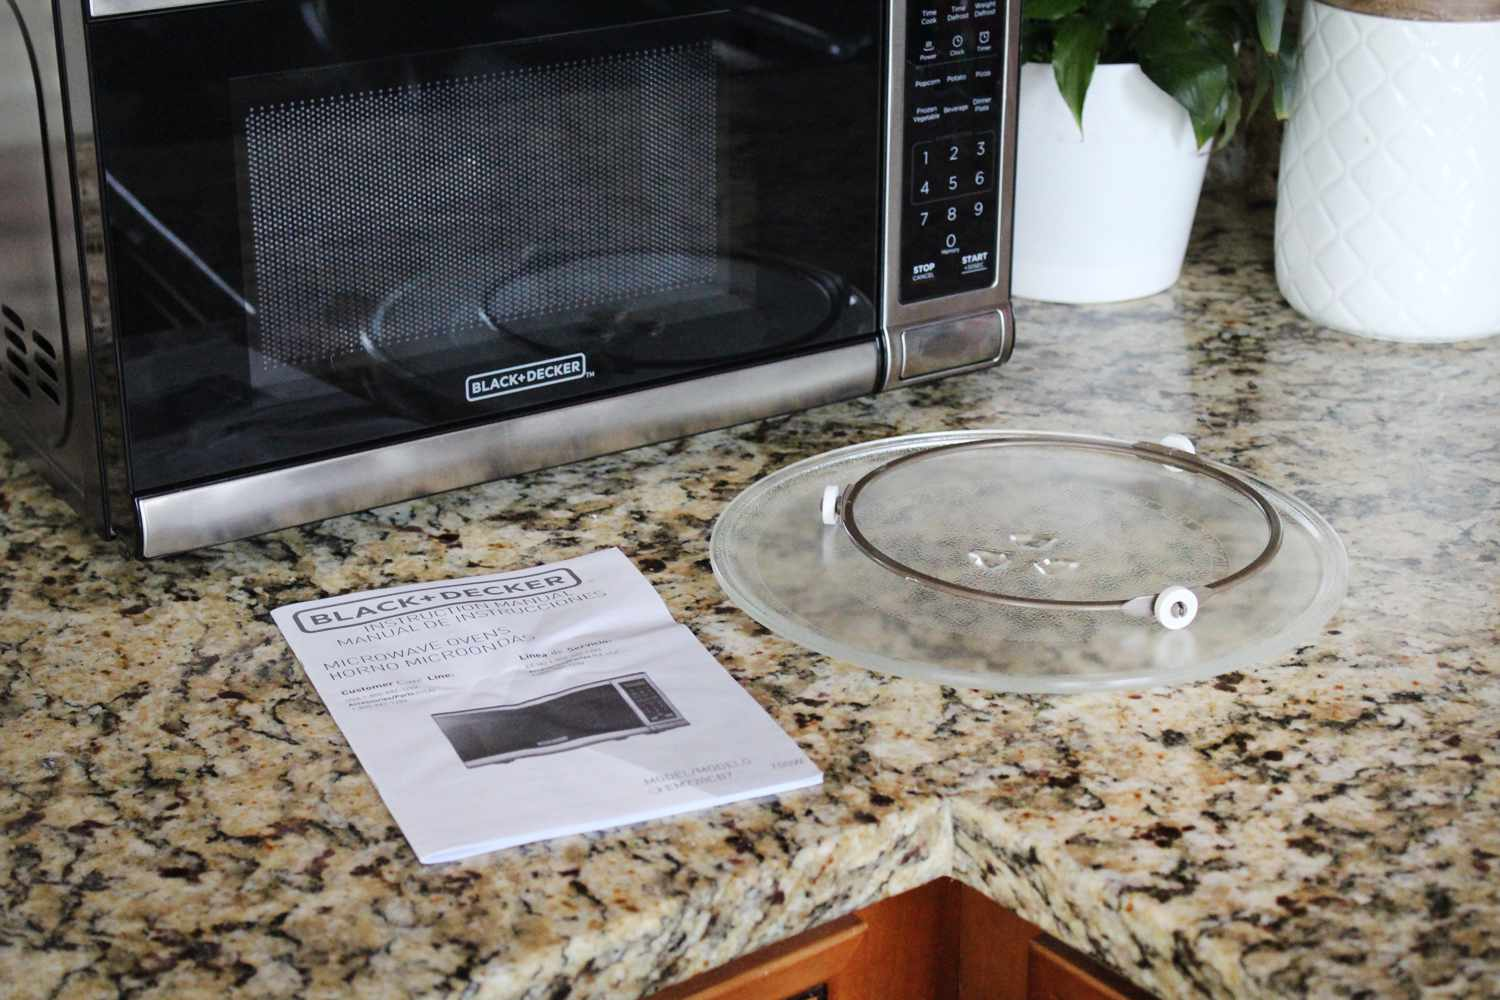 black decker microwave oven review